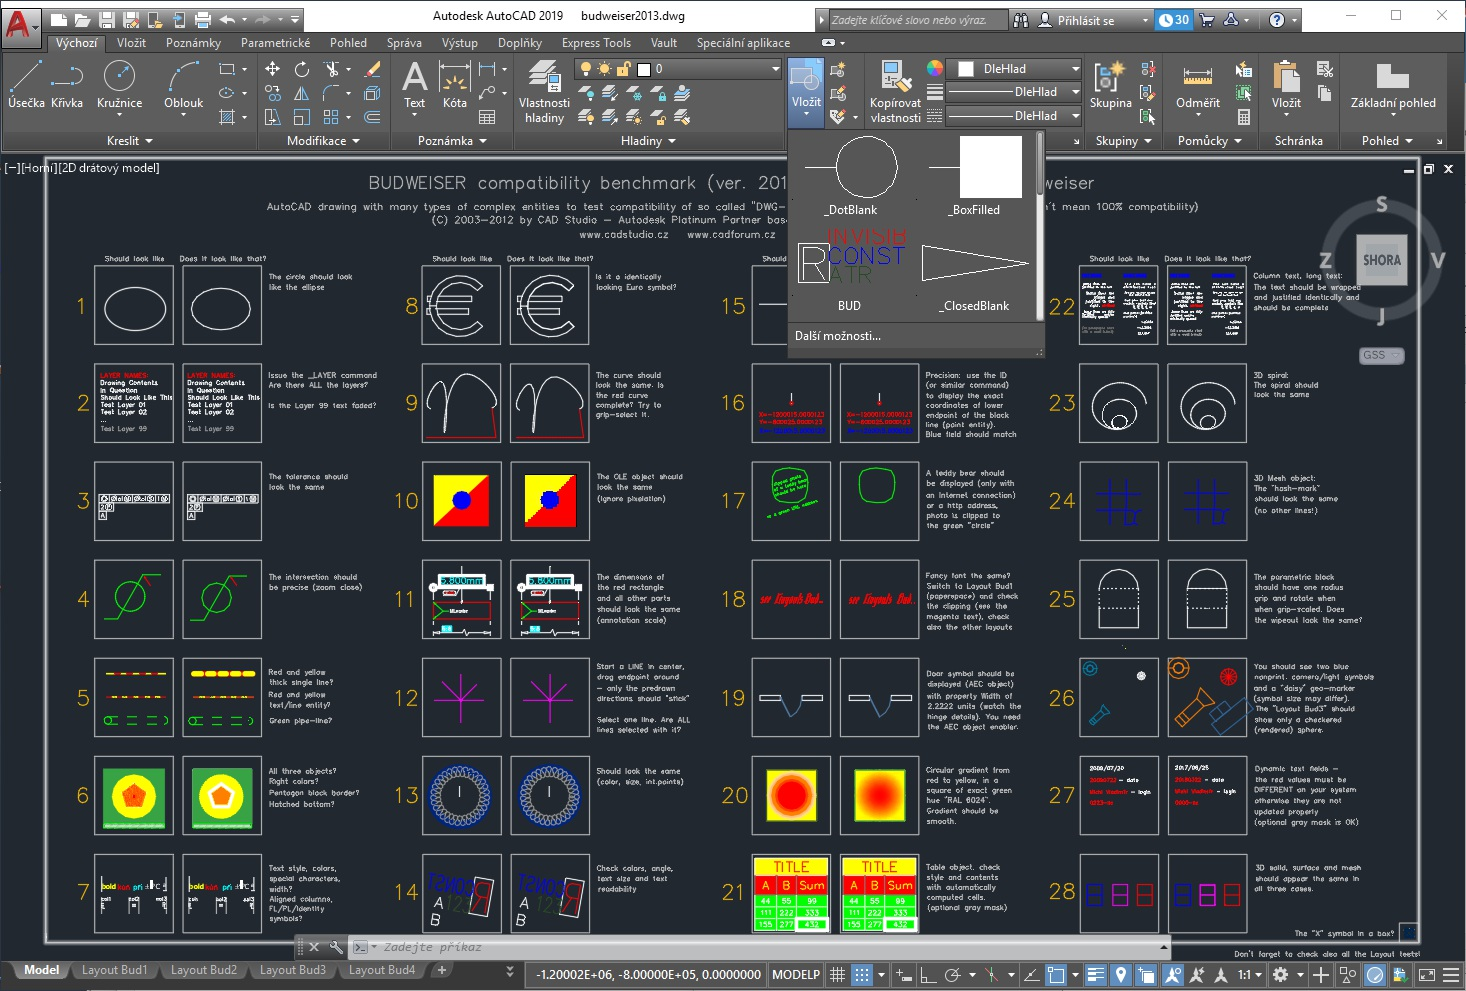 Budweiser Blog: AutoCAD 2019 - installation and what's new